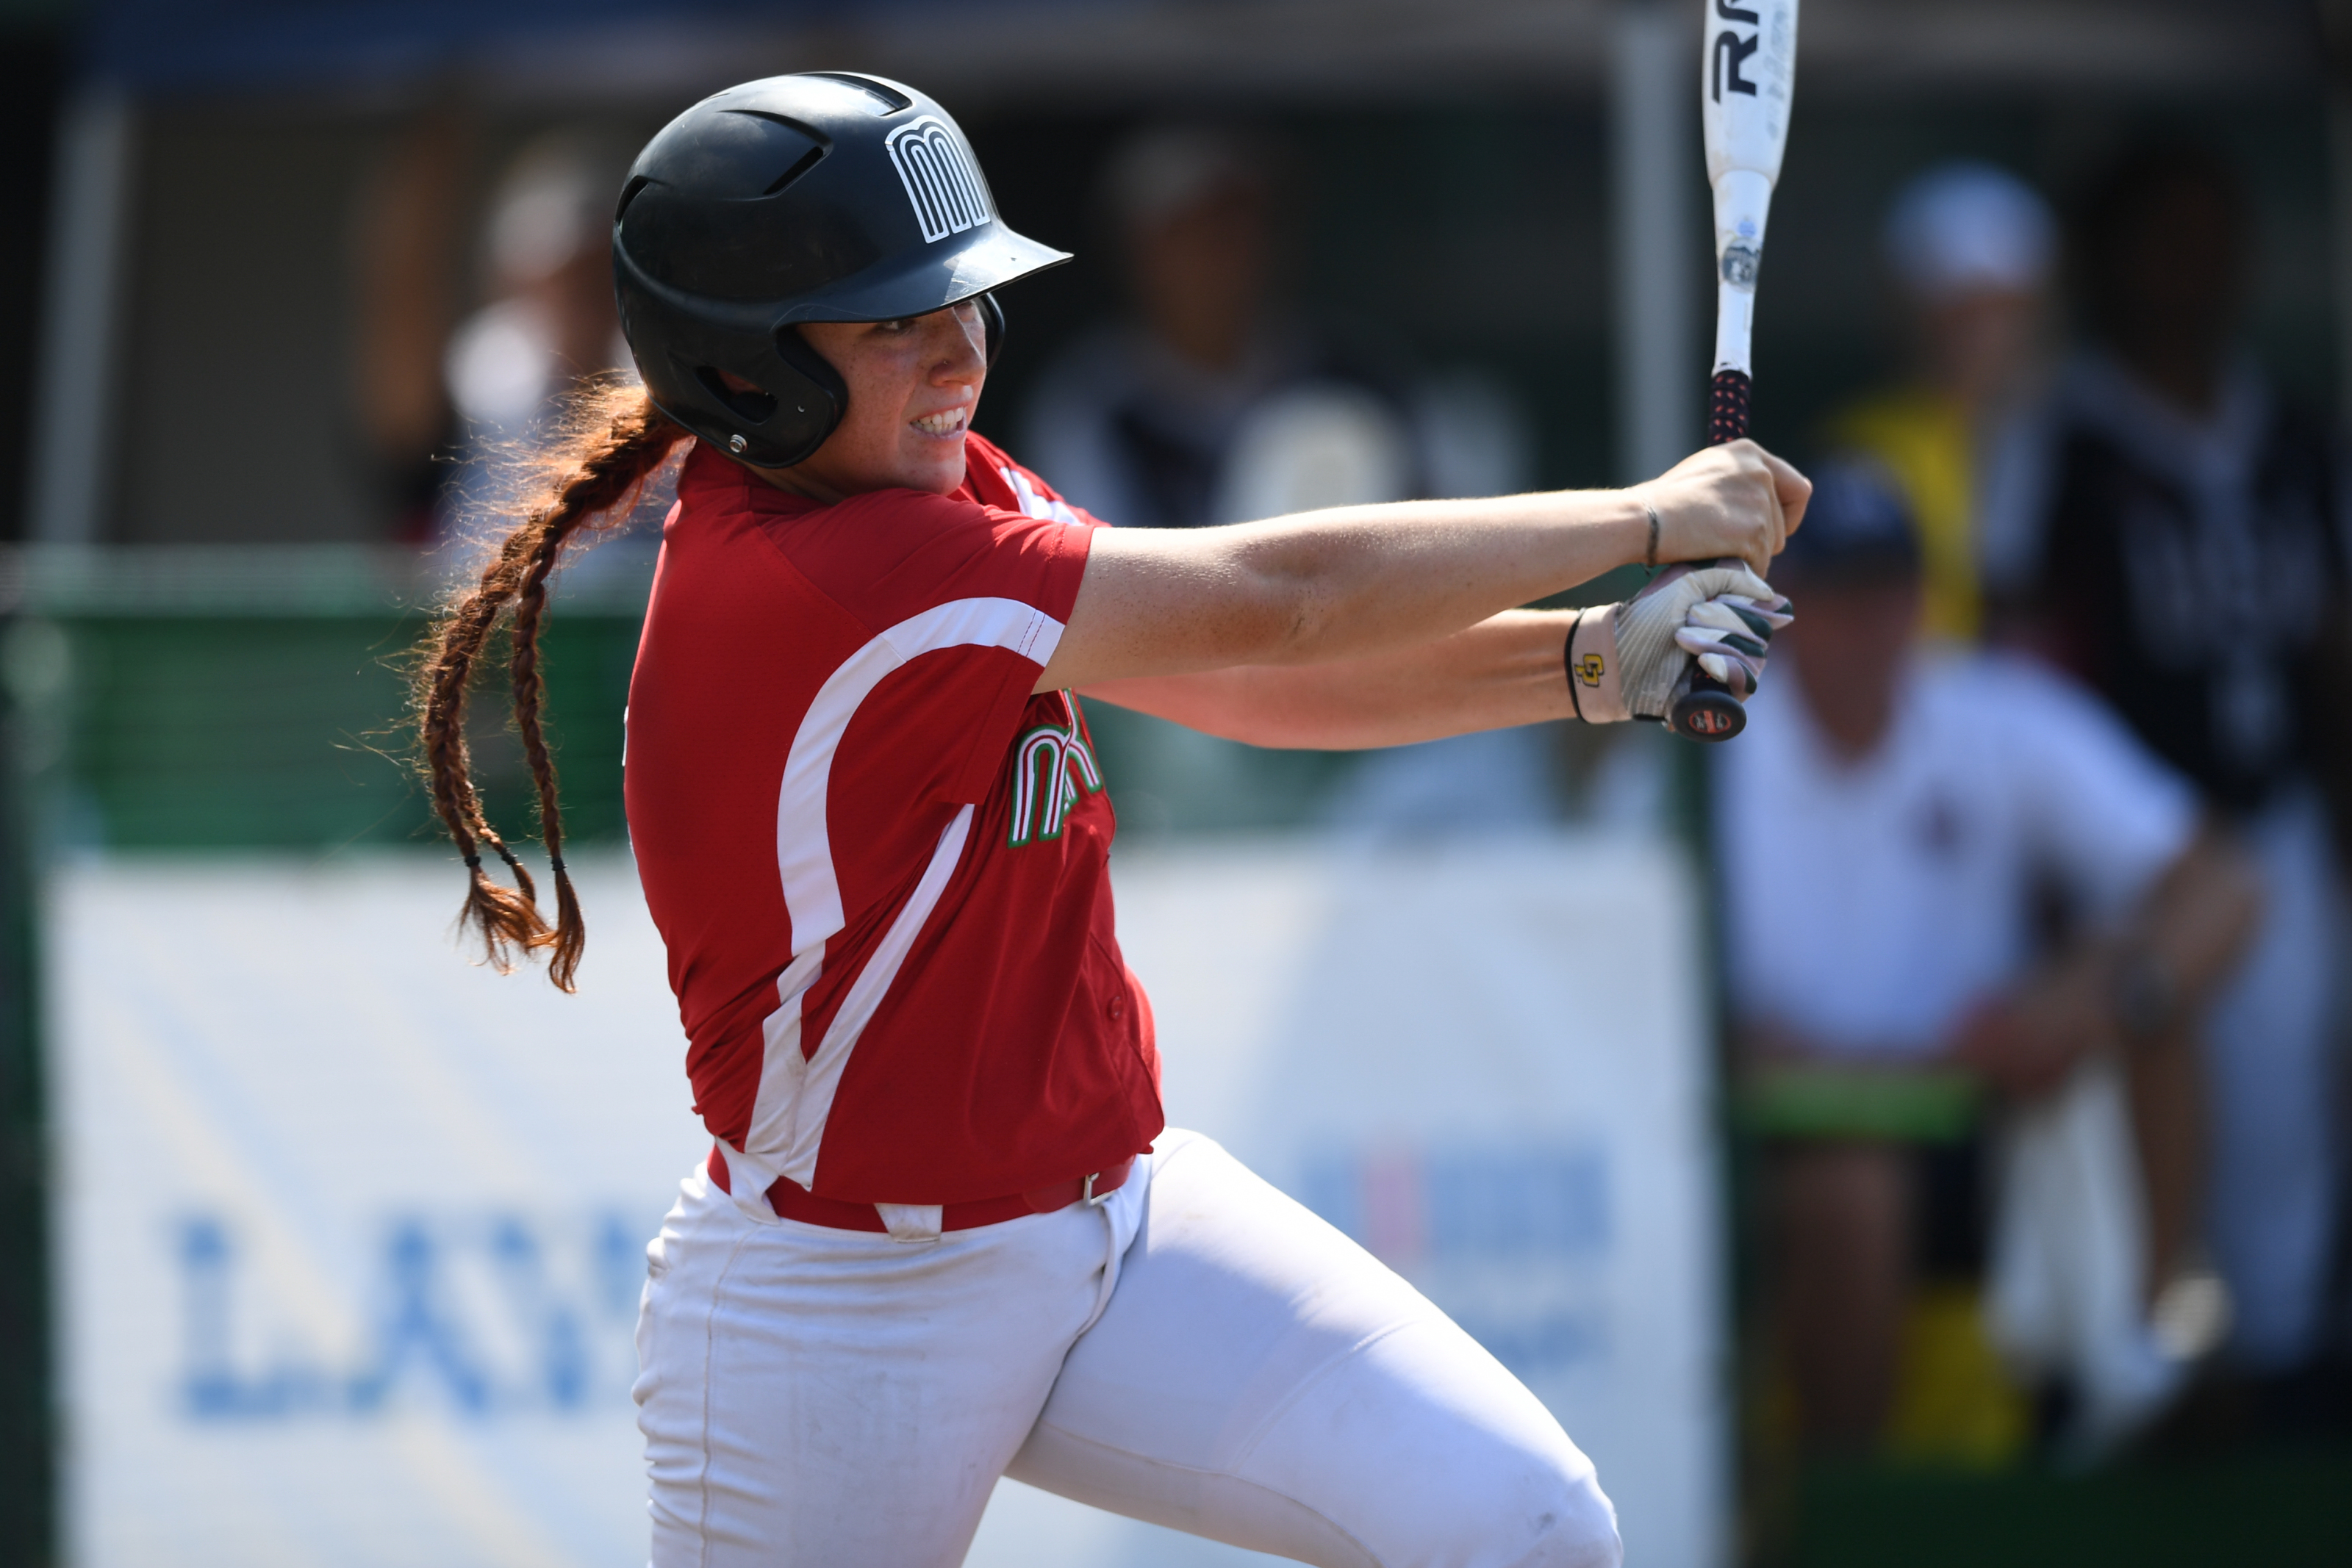 Oklahoma softball: Sooners drop in rankings after back-to-back losses